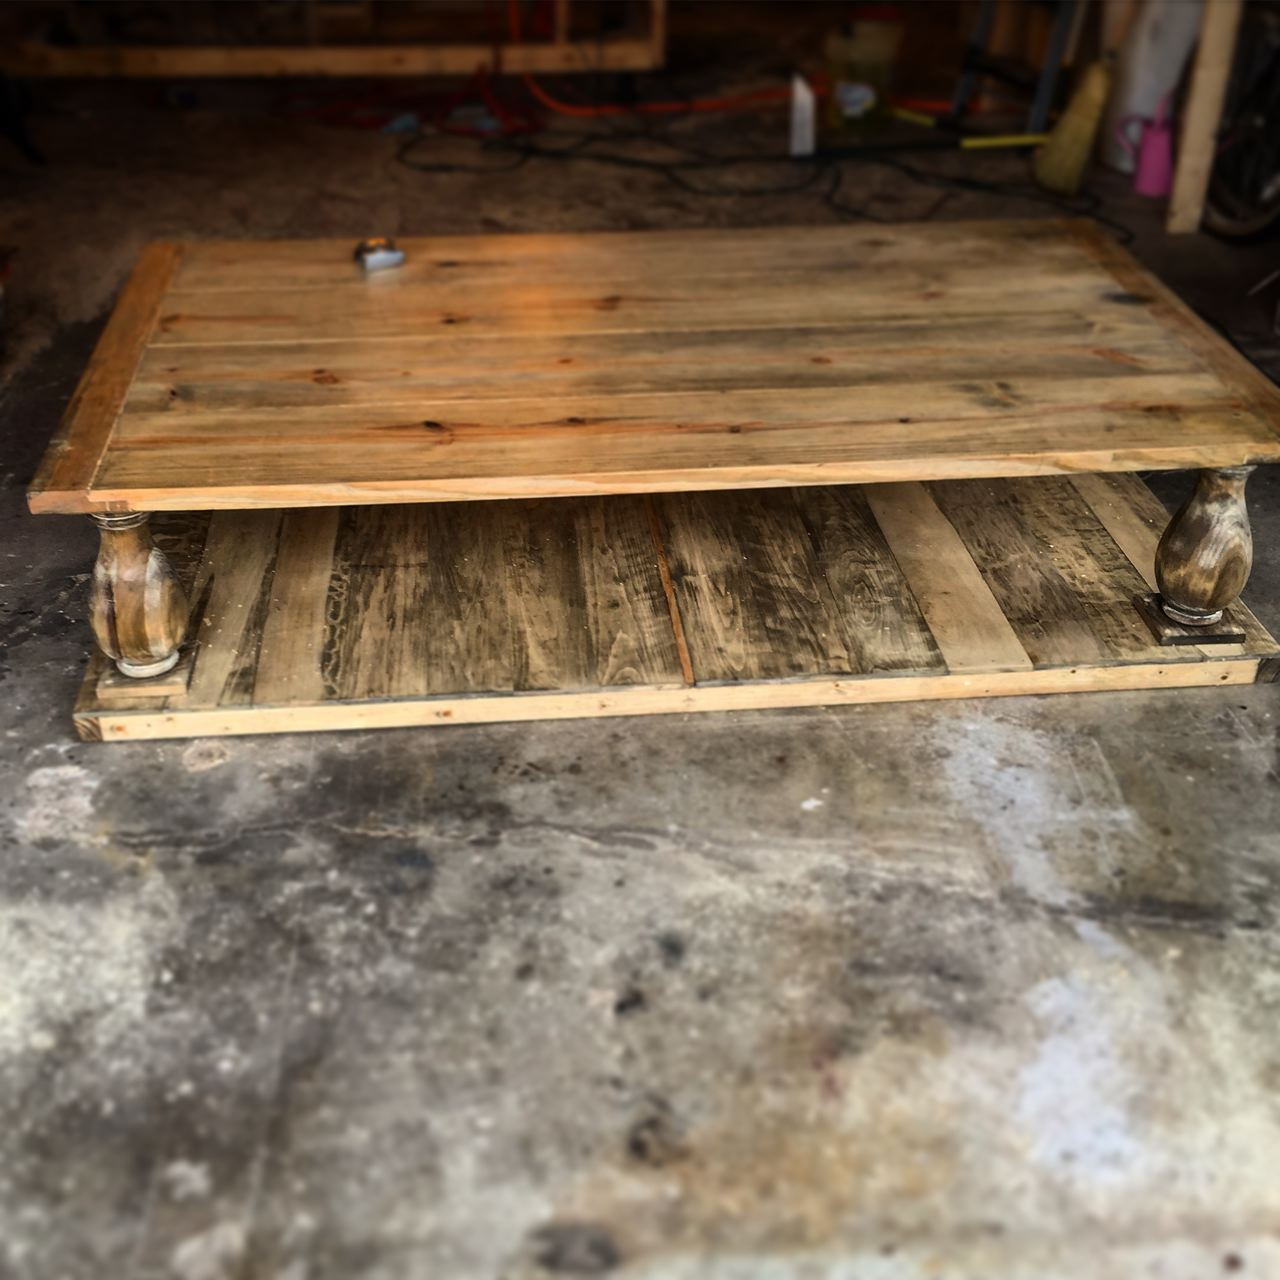 The finished coffee table.Photo courtesy of AnSquared.